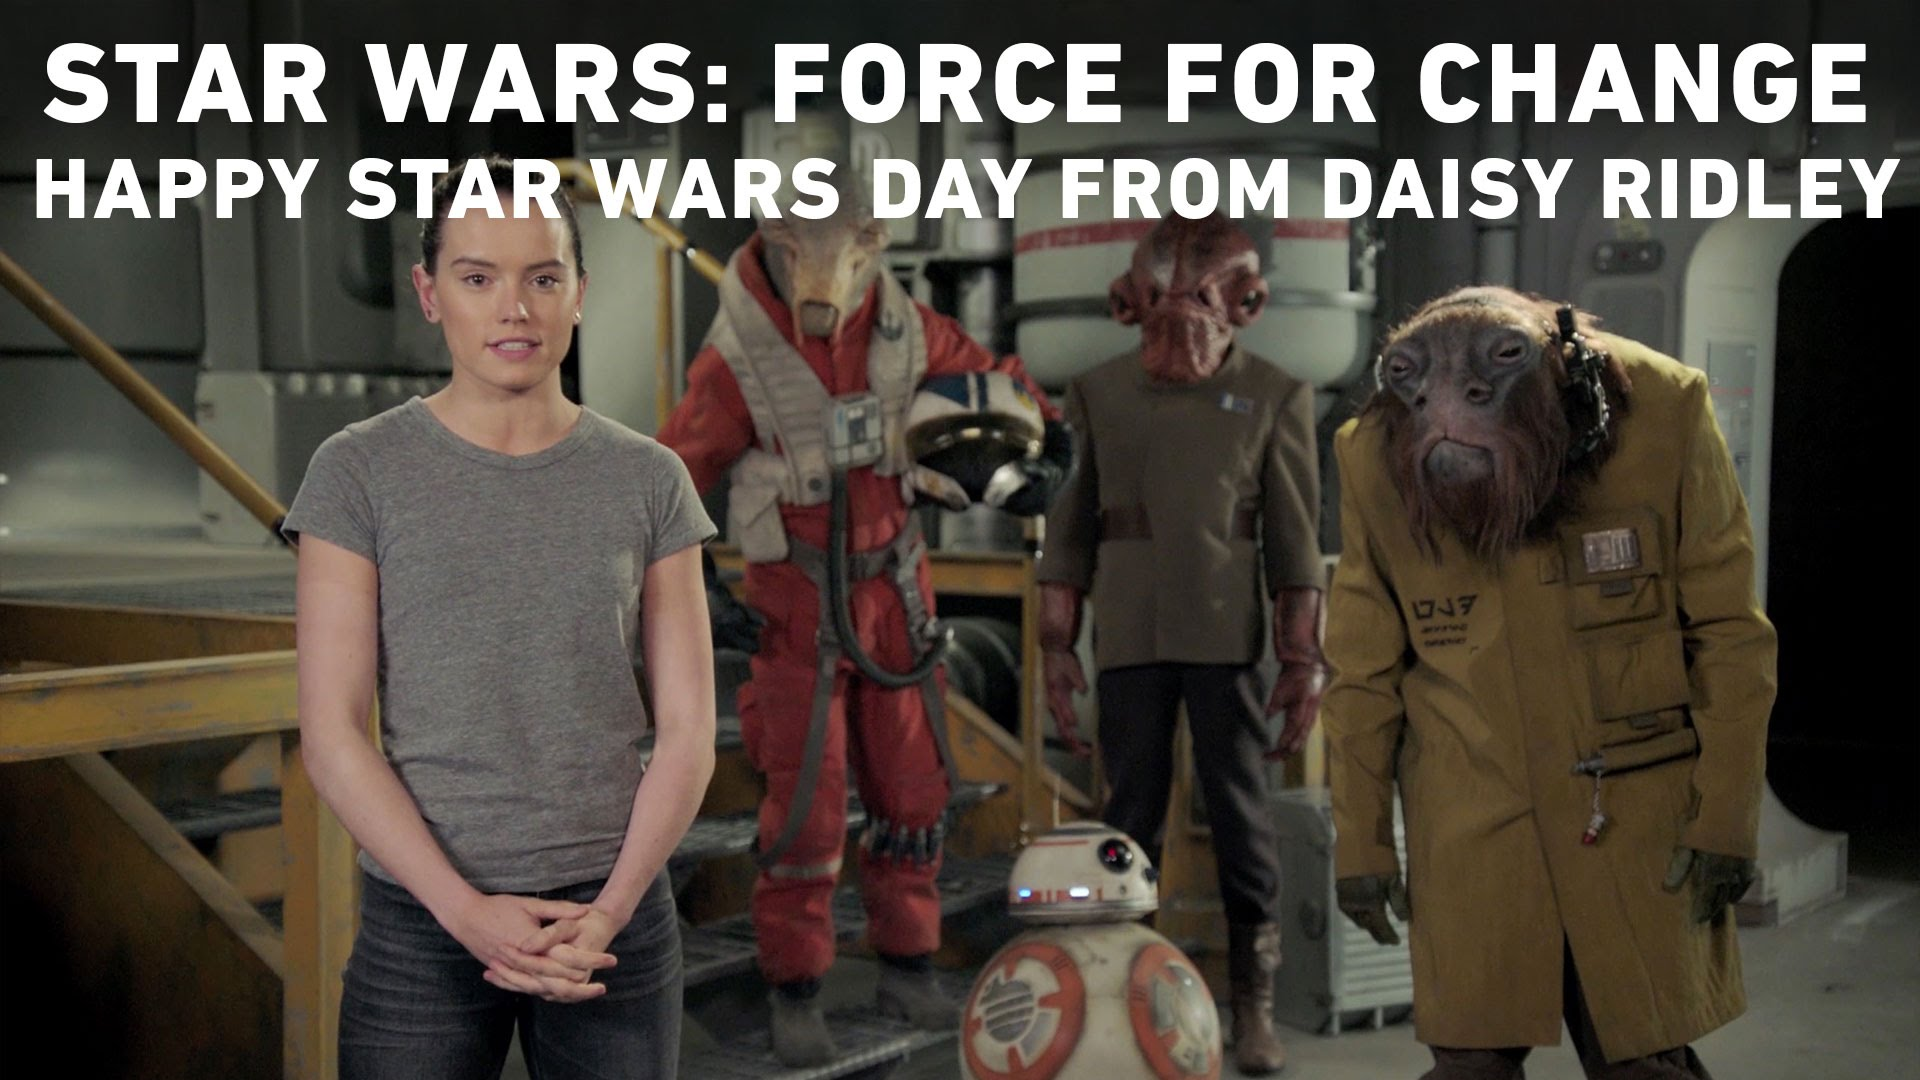 Star Wars: Force for Change – Happy Star Wars Day from Daisy Ridley